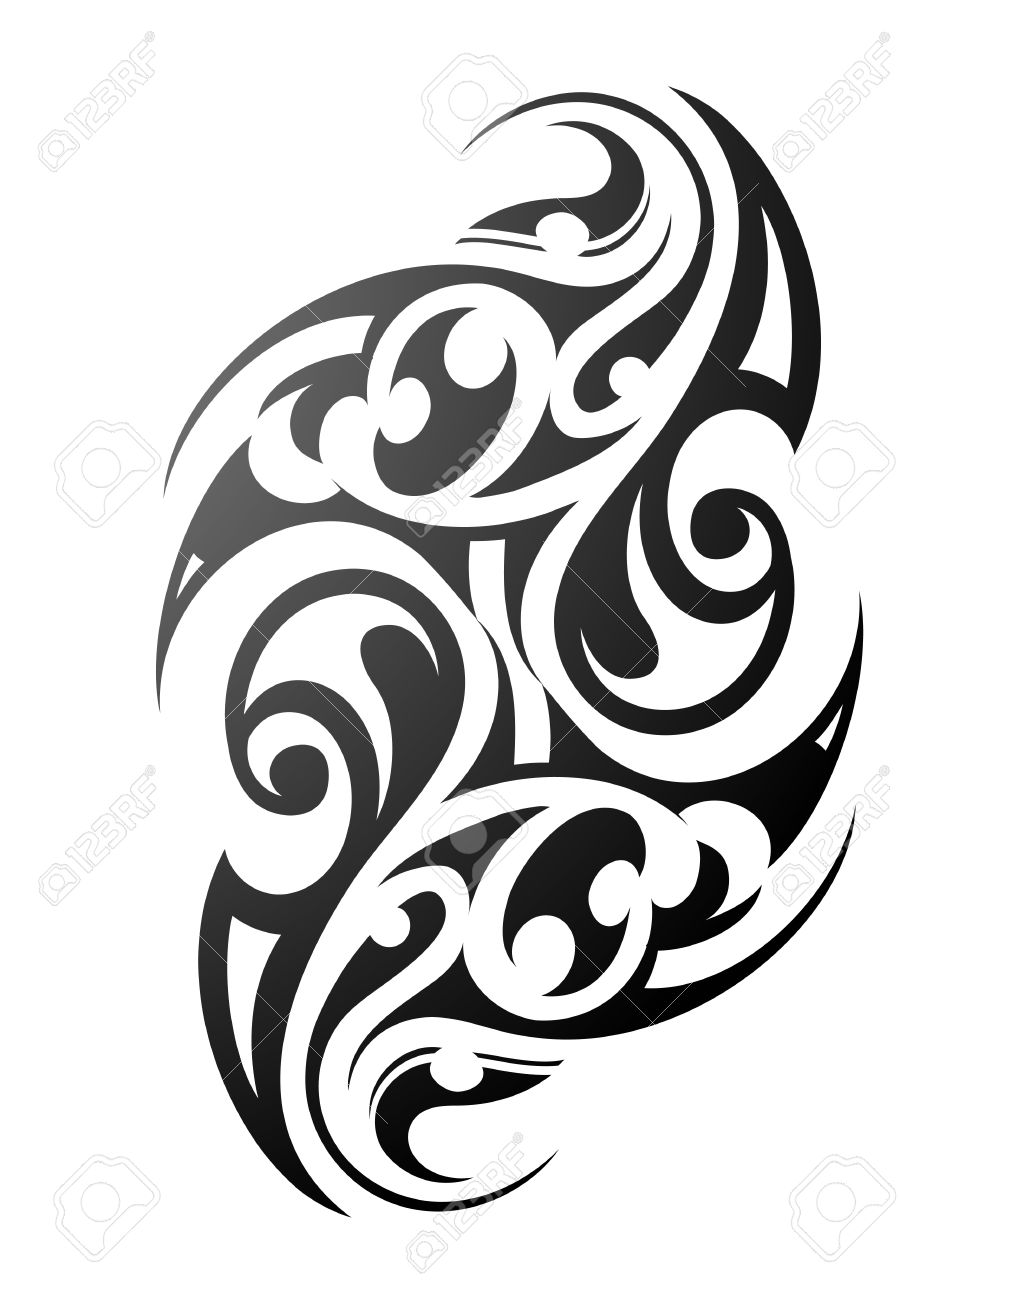 maori bedeutung symbole beautiful turtle in maori style tattoo design with maori bedeutung. Black Bedroom Furniture Sets. Home Design Ideas